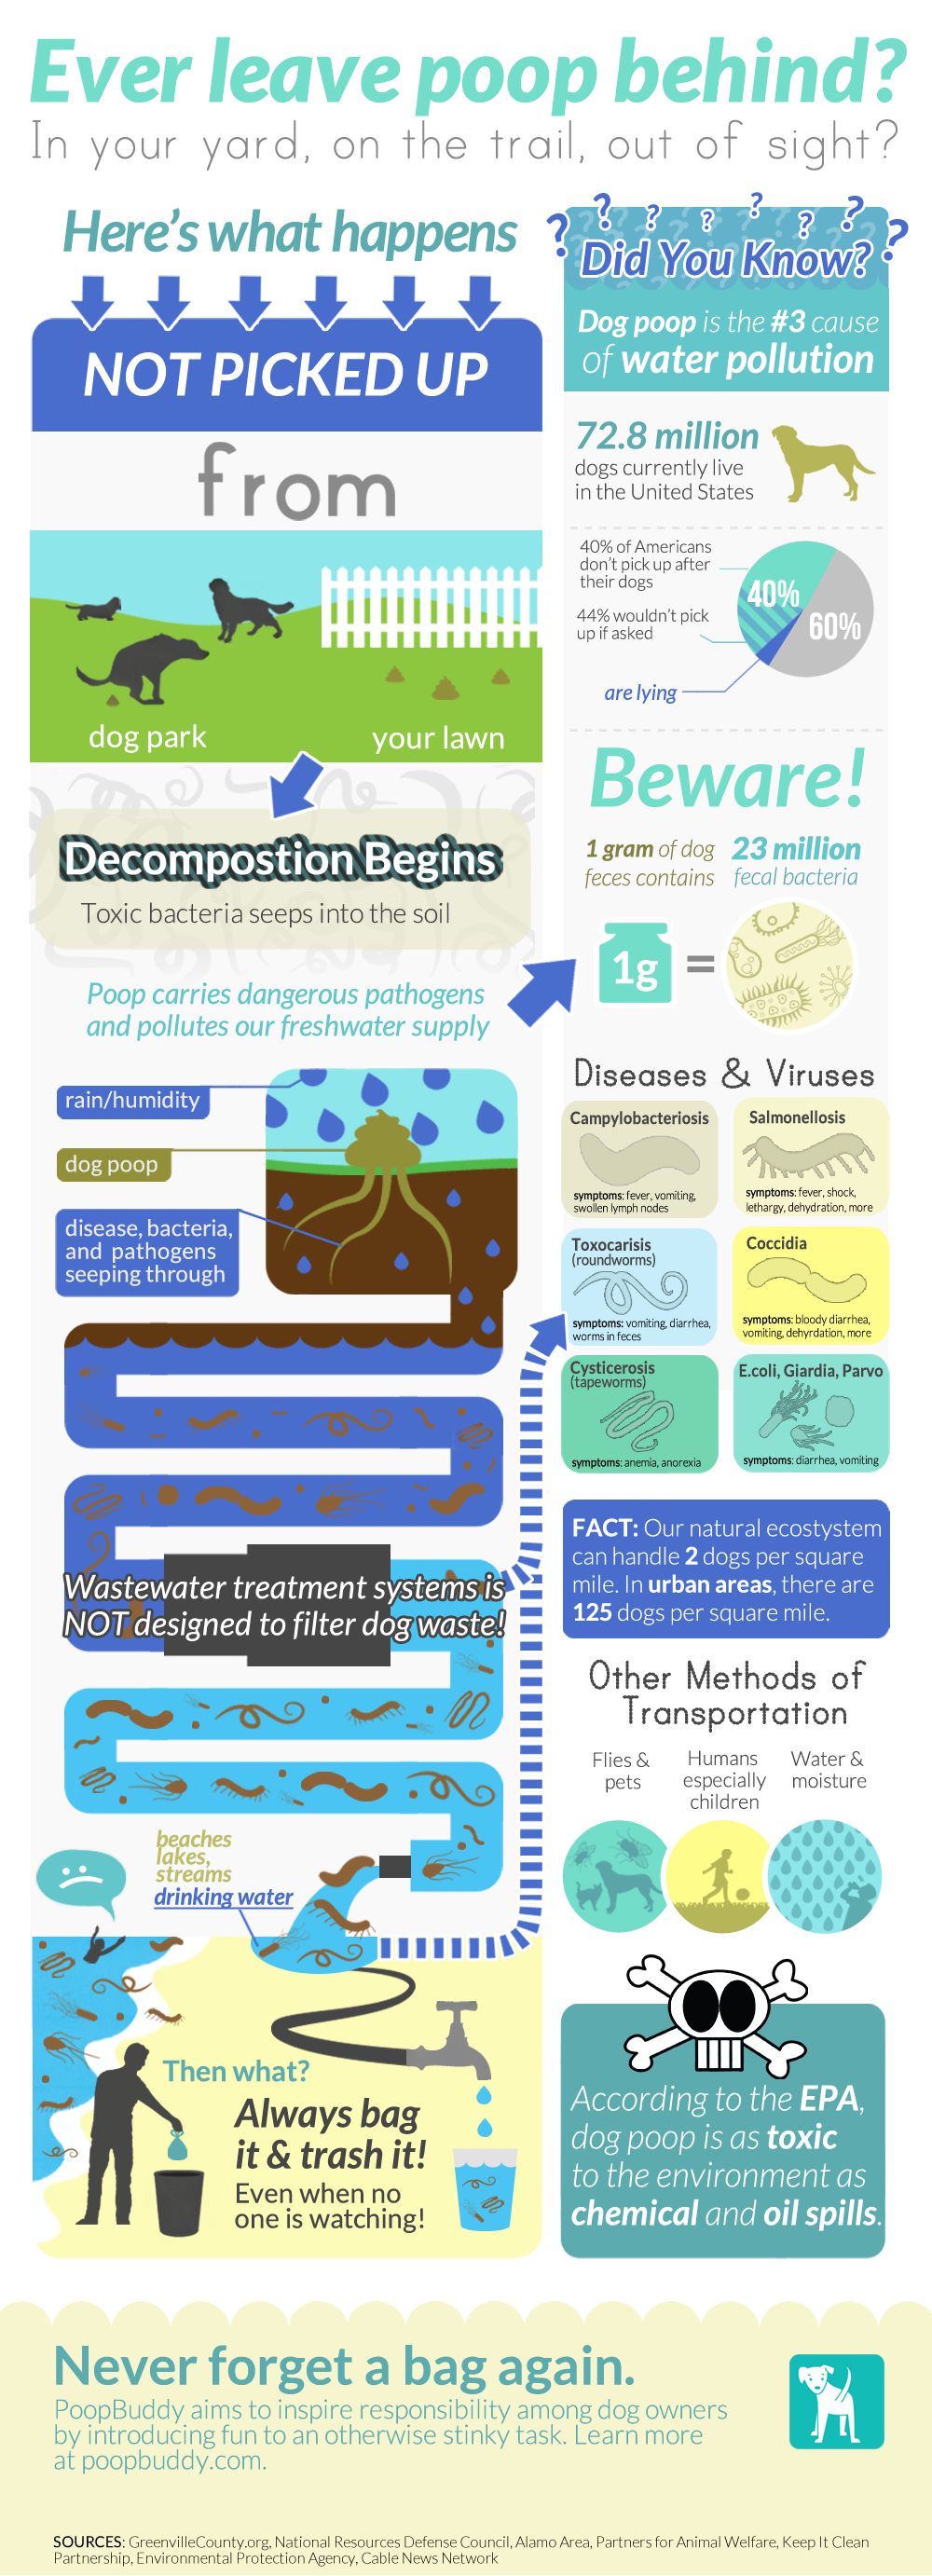 dog poop water pollution infographic